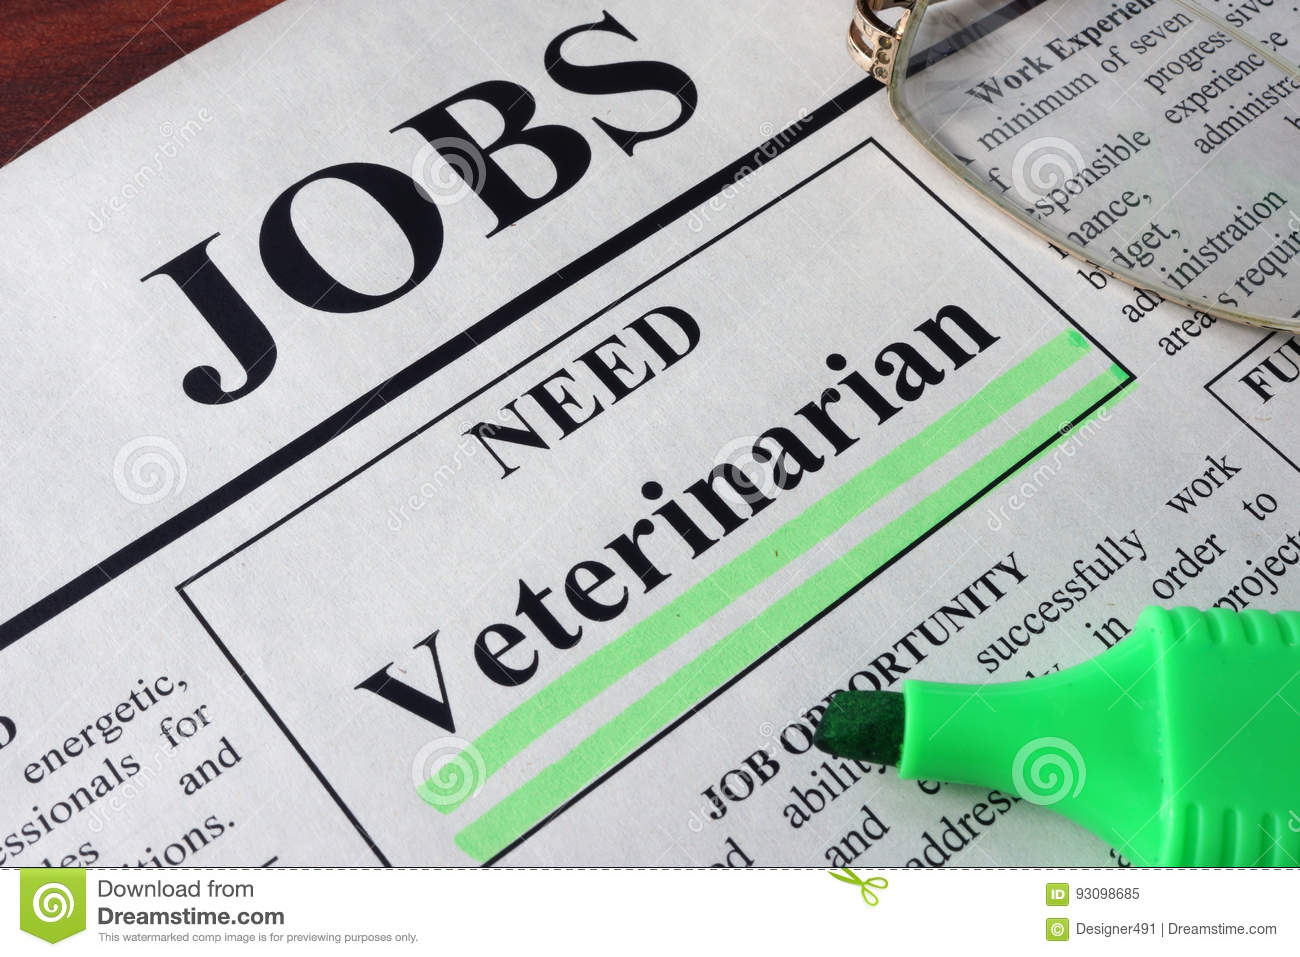 Newspaper with ads for vacancy Veterinarian.